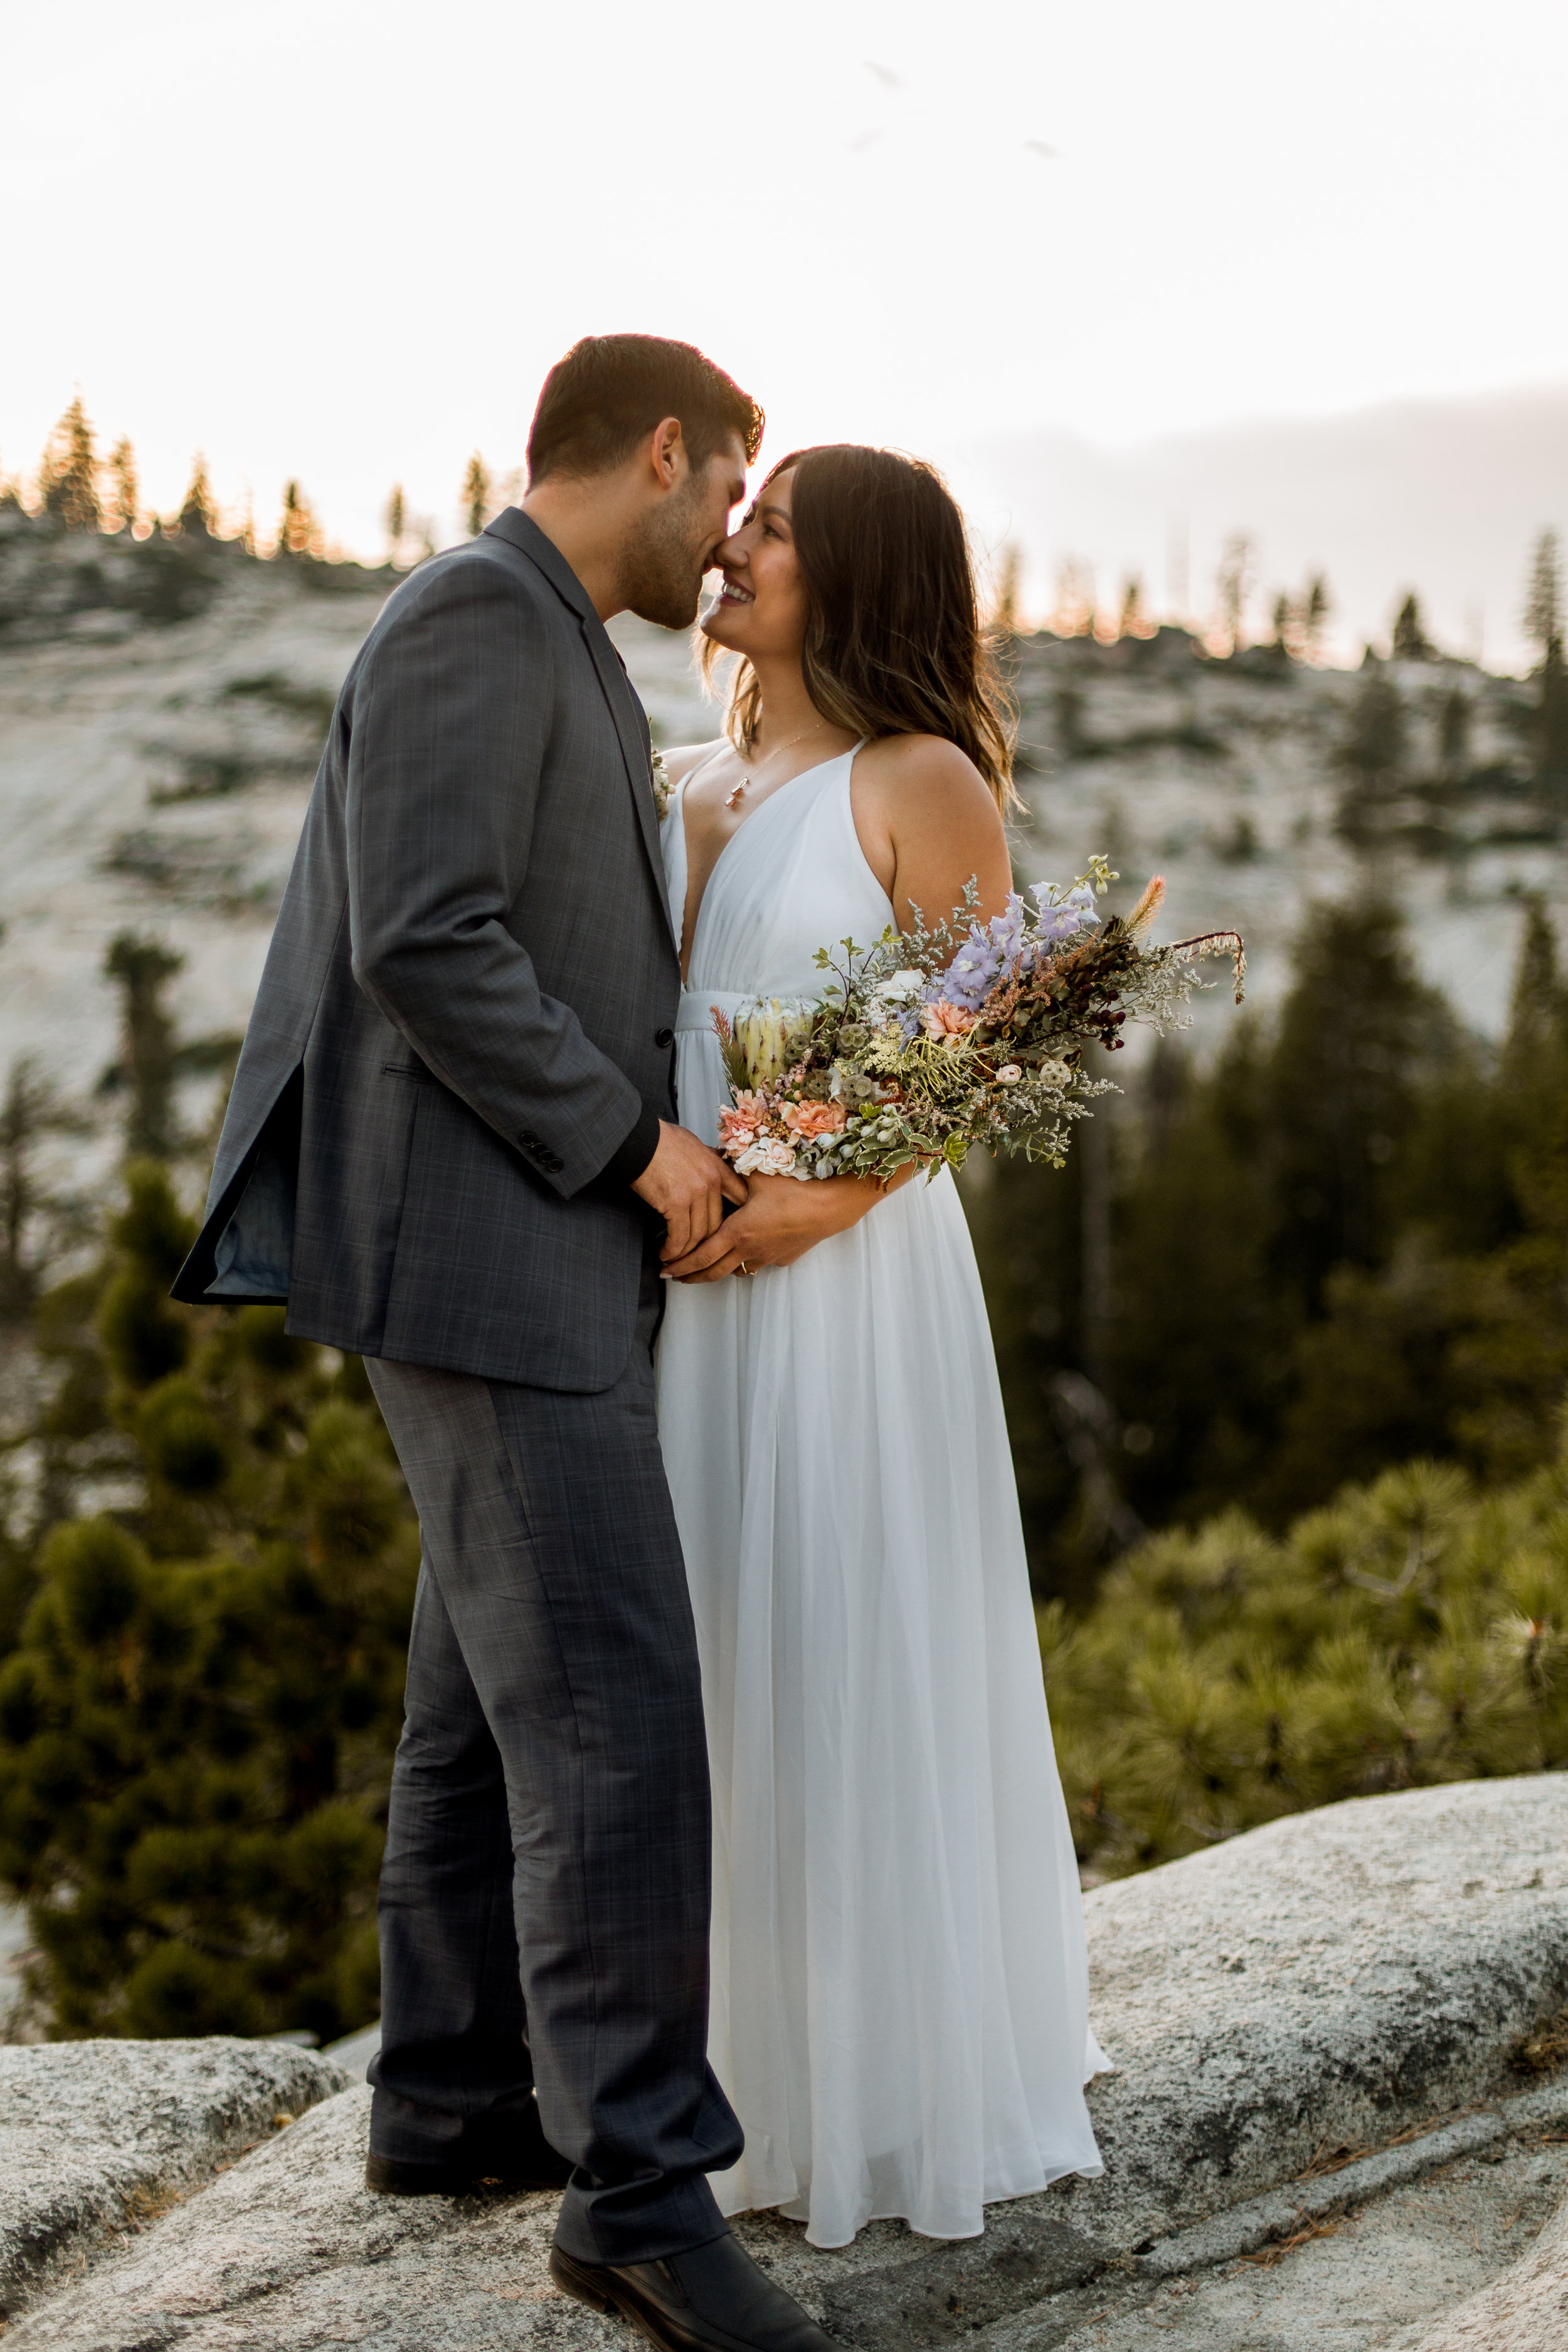 nicole-daacke-photography-yosemite-national-park-fall-elopement-adventurous-free-spirit-boho-bohemian-elopement-olmsted-point-yosemite-california-elope-adventure-elopement-photographer-11.jpg